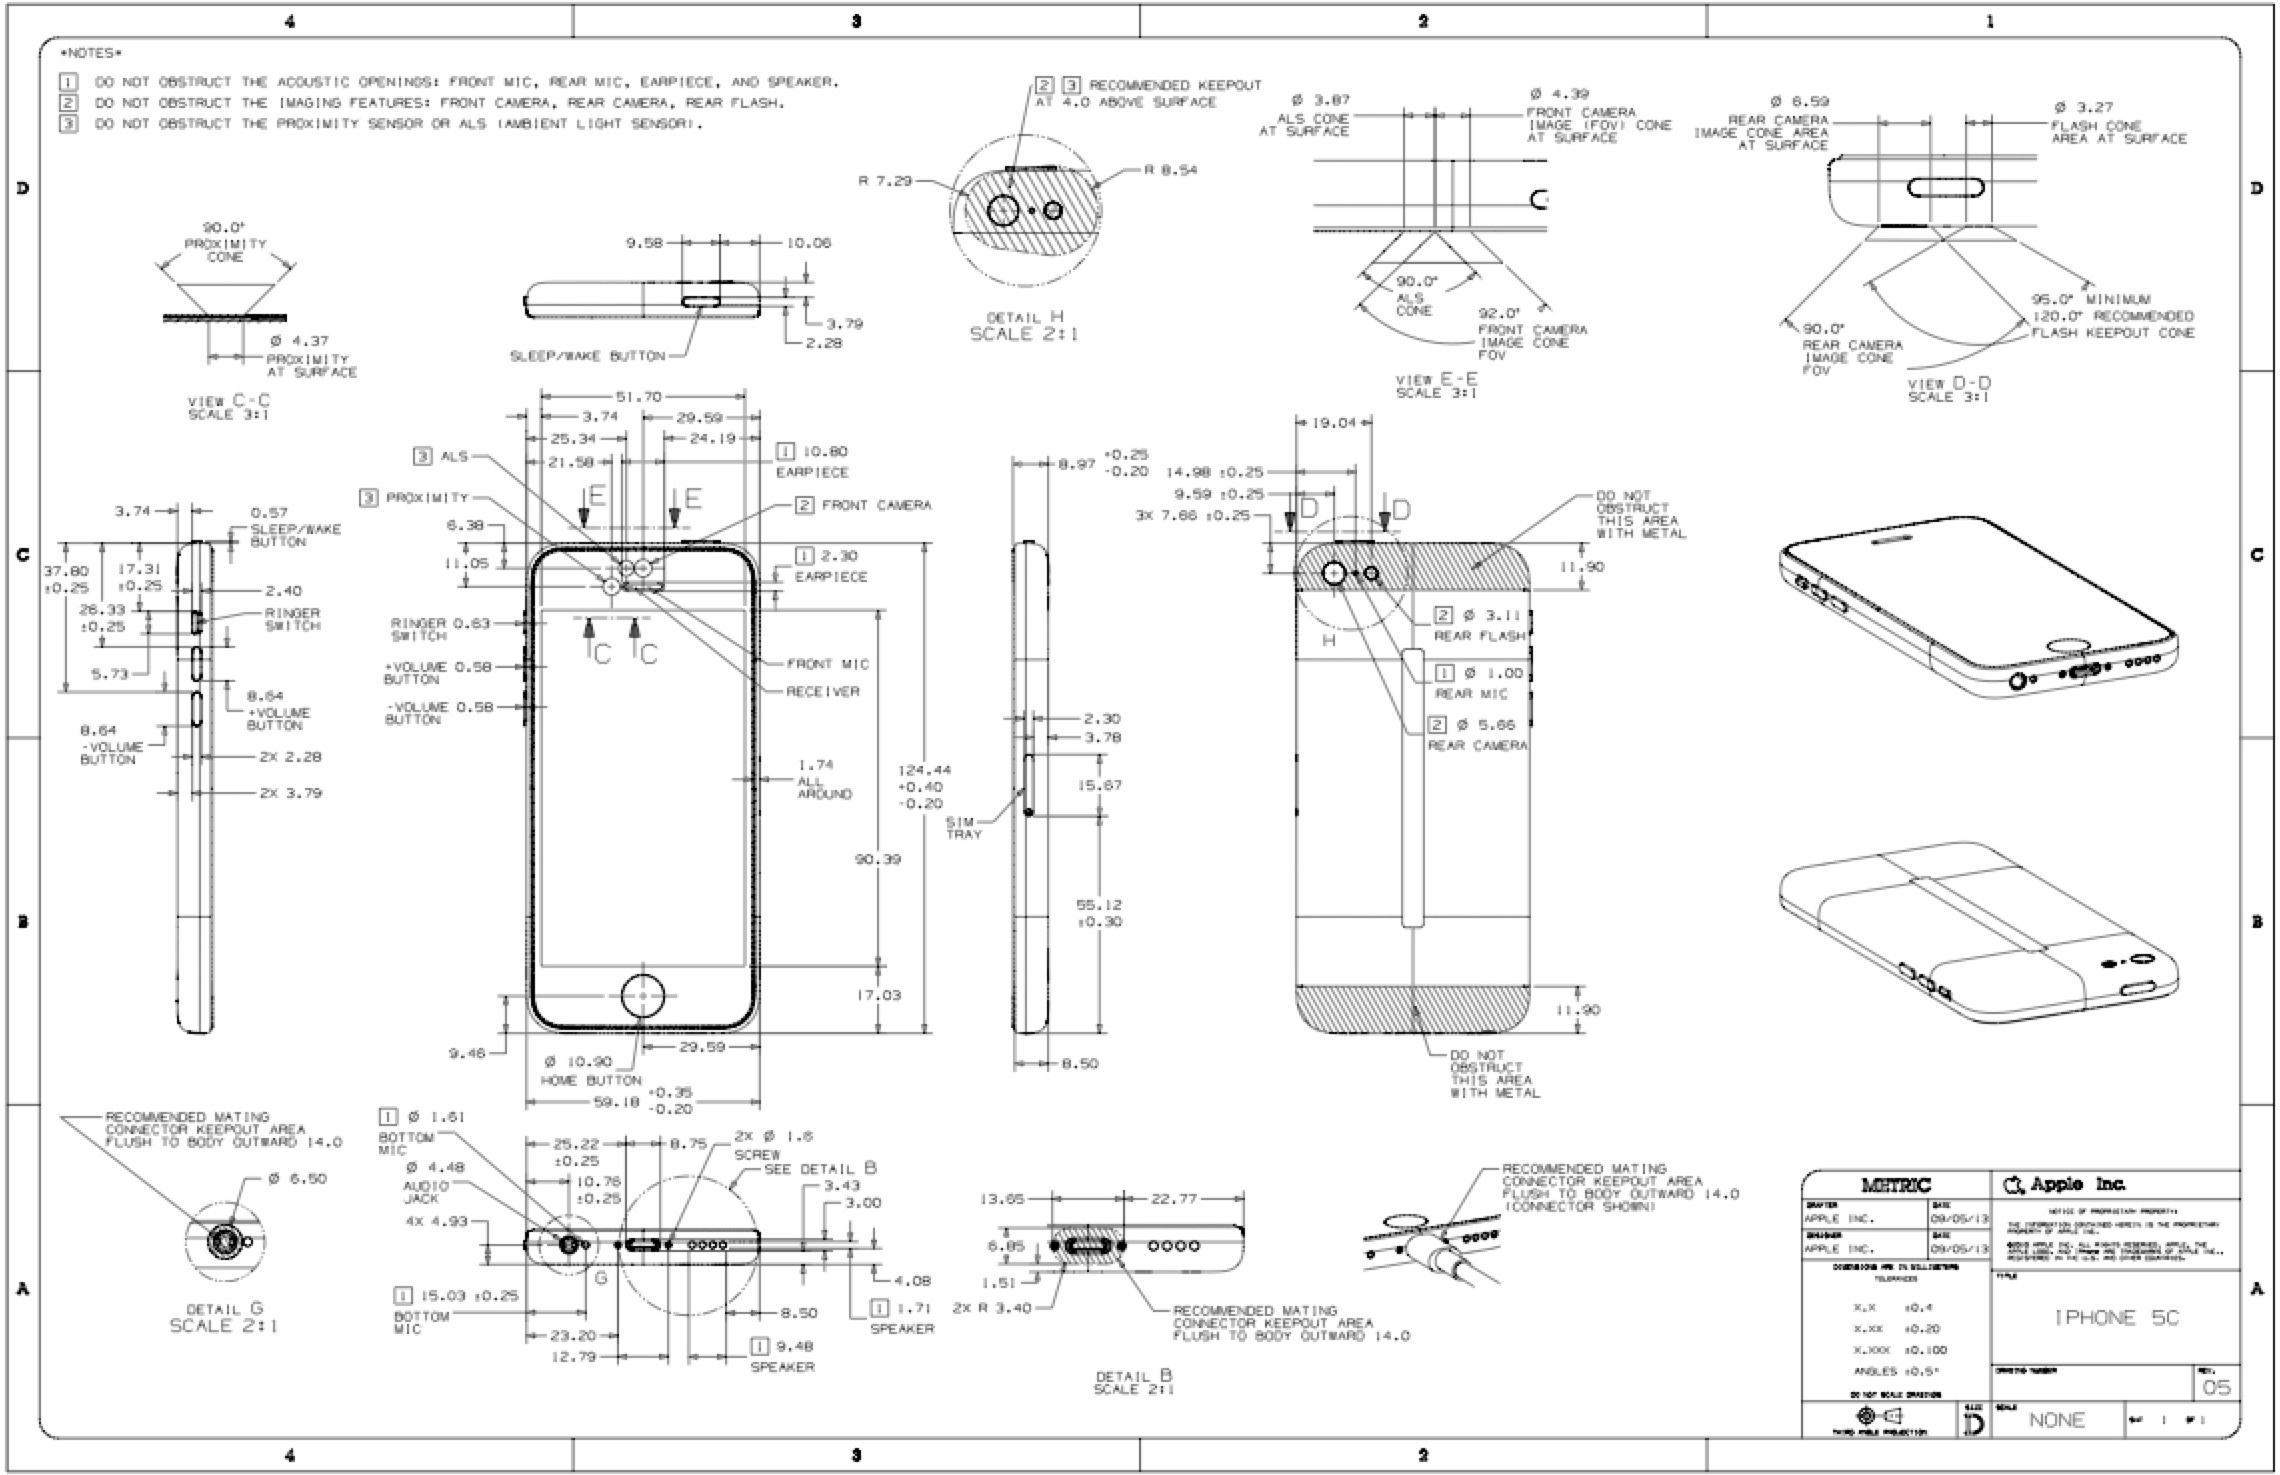 Iphone Wiring Schematics Diagram Libraries Ipad Usb Cable On Headphone Jack 5 Diagrams Schemaapple Mini